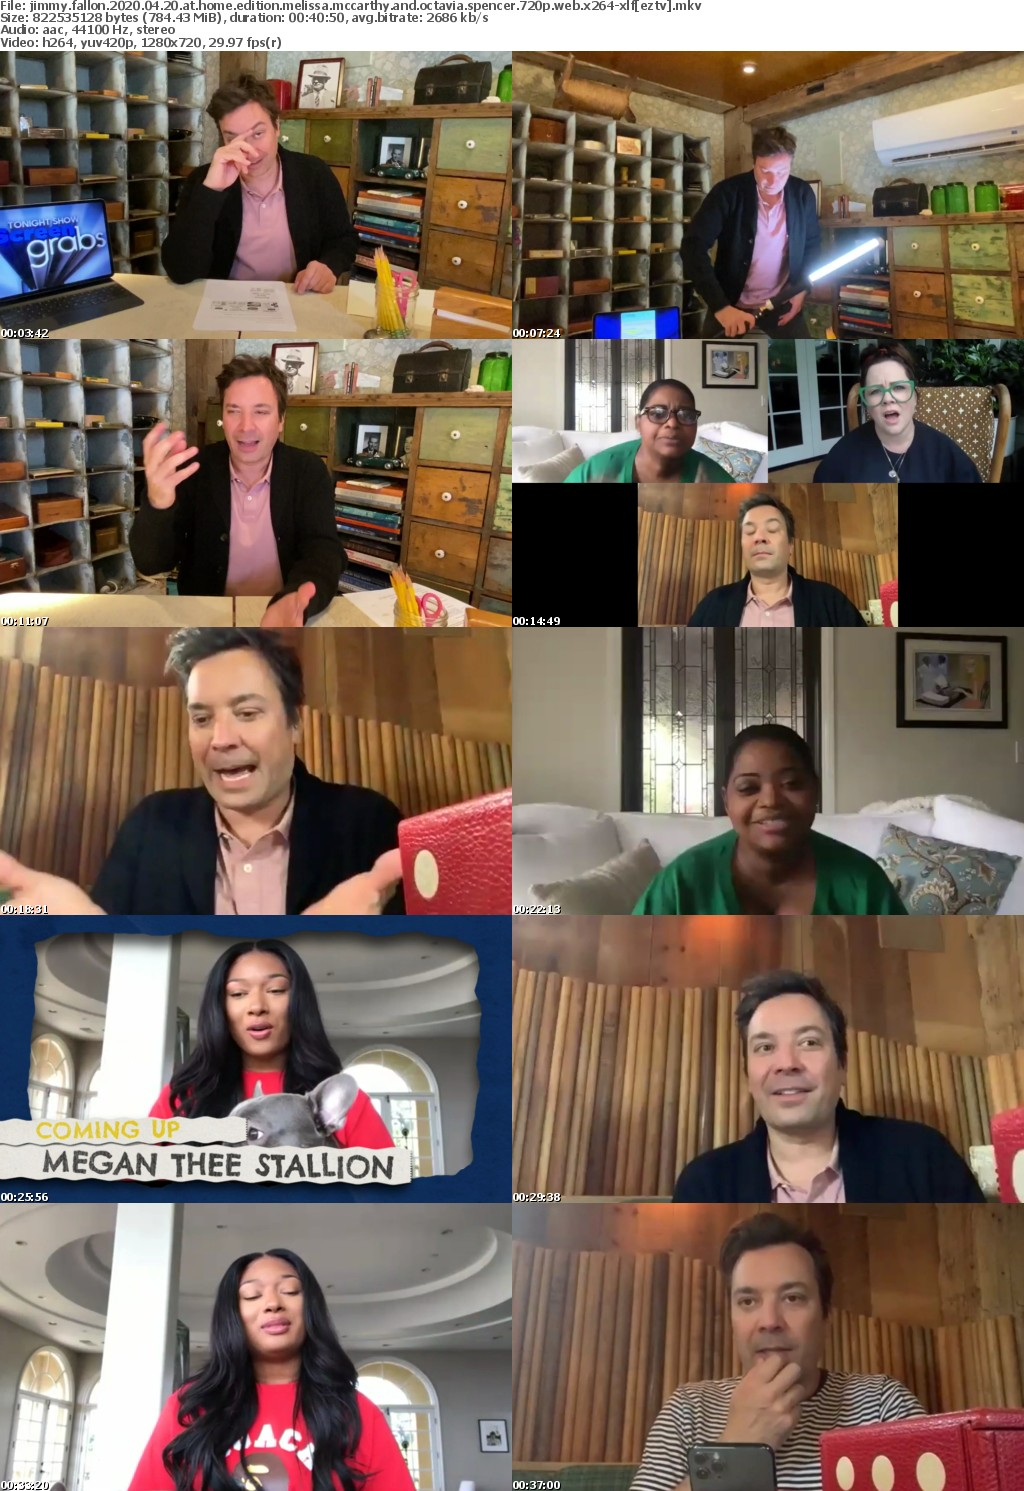 Jimmy Fallon 2020 04 20 At Home Edition Melissa McCarthy and Octavia Spencer 720p WEB x264-XLF